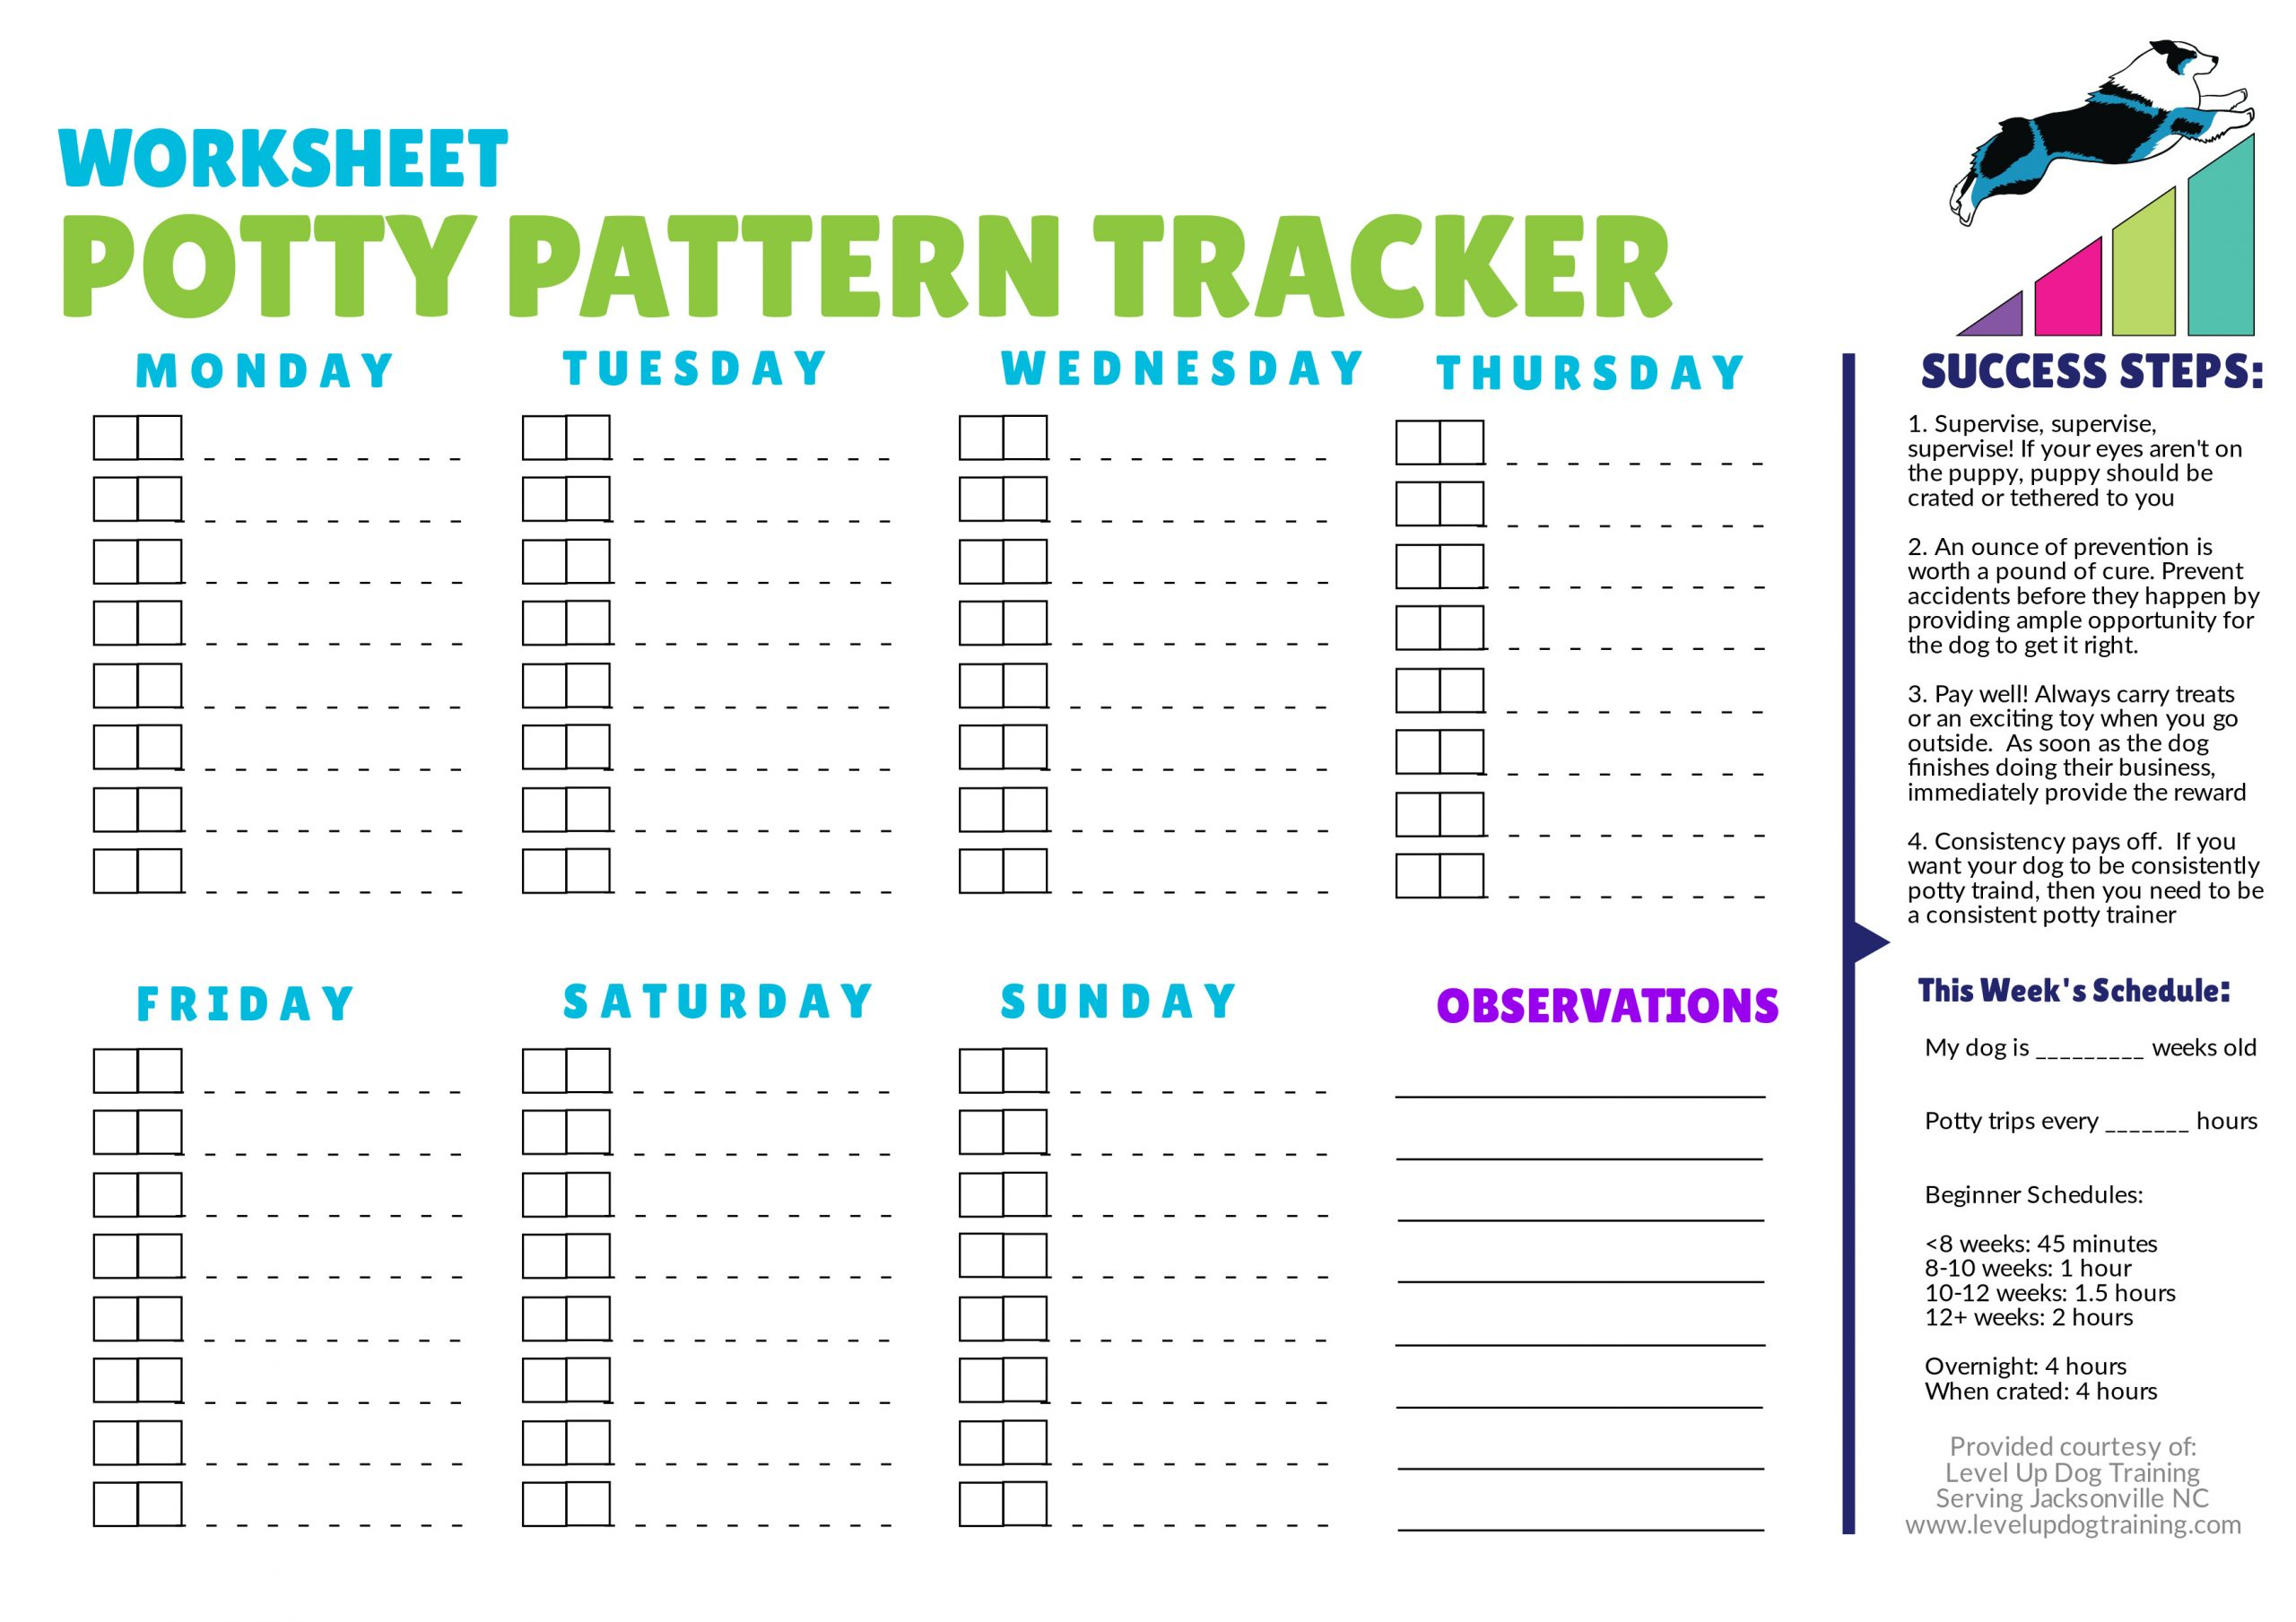 Free Printable Dog Training Worksheets Potty Training Planner Our Ultimate Guide to House Training